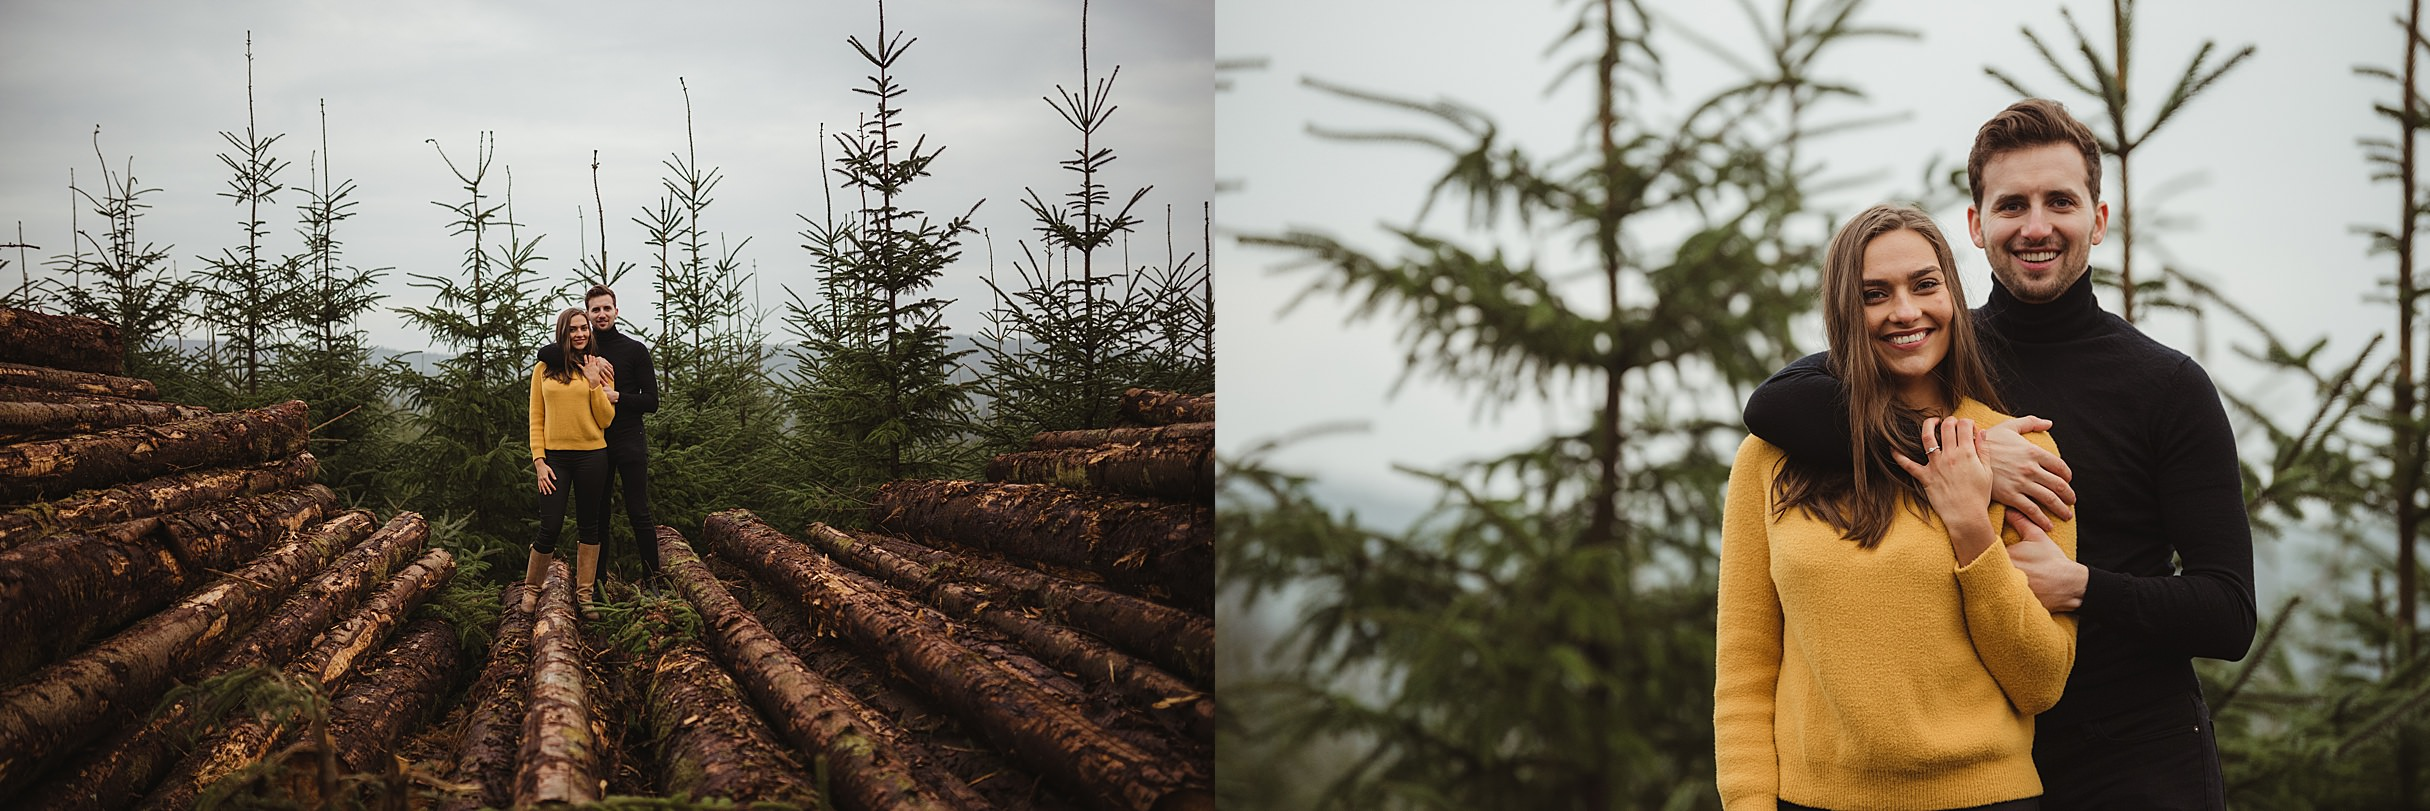 Wicklow-Mountains-Engagement-Dublin-Photographer-Session-73.jpg